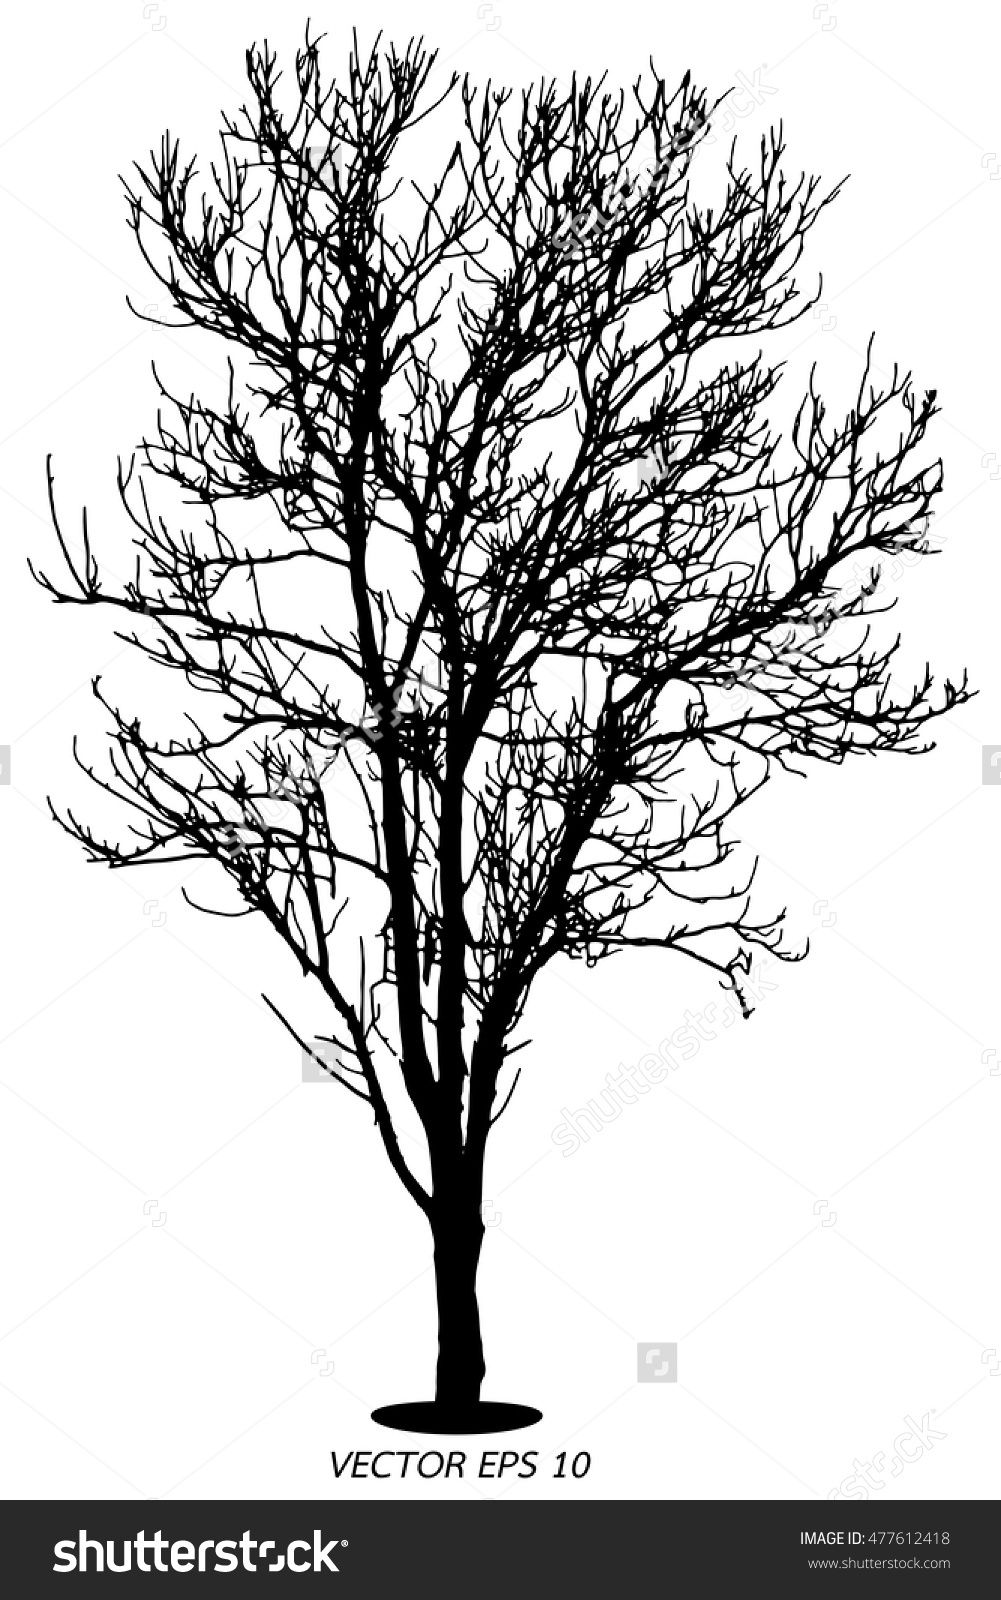 Tree Silhouette Dry Tree Or Dead Tree On White On Background Tree Dry Dead Background Silhouette White Black Tree Silhouette Dry Tree Tree Painting